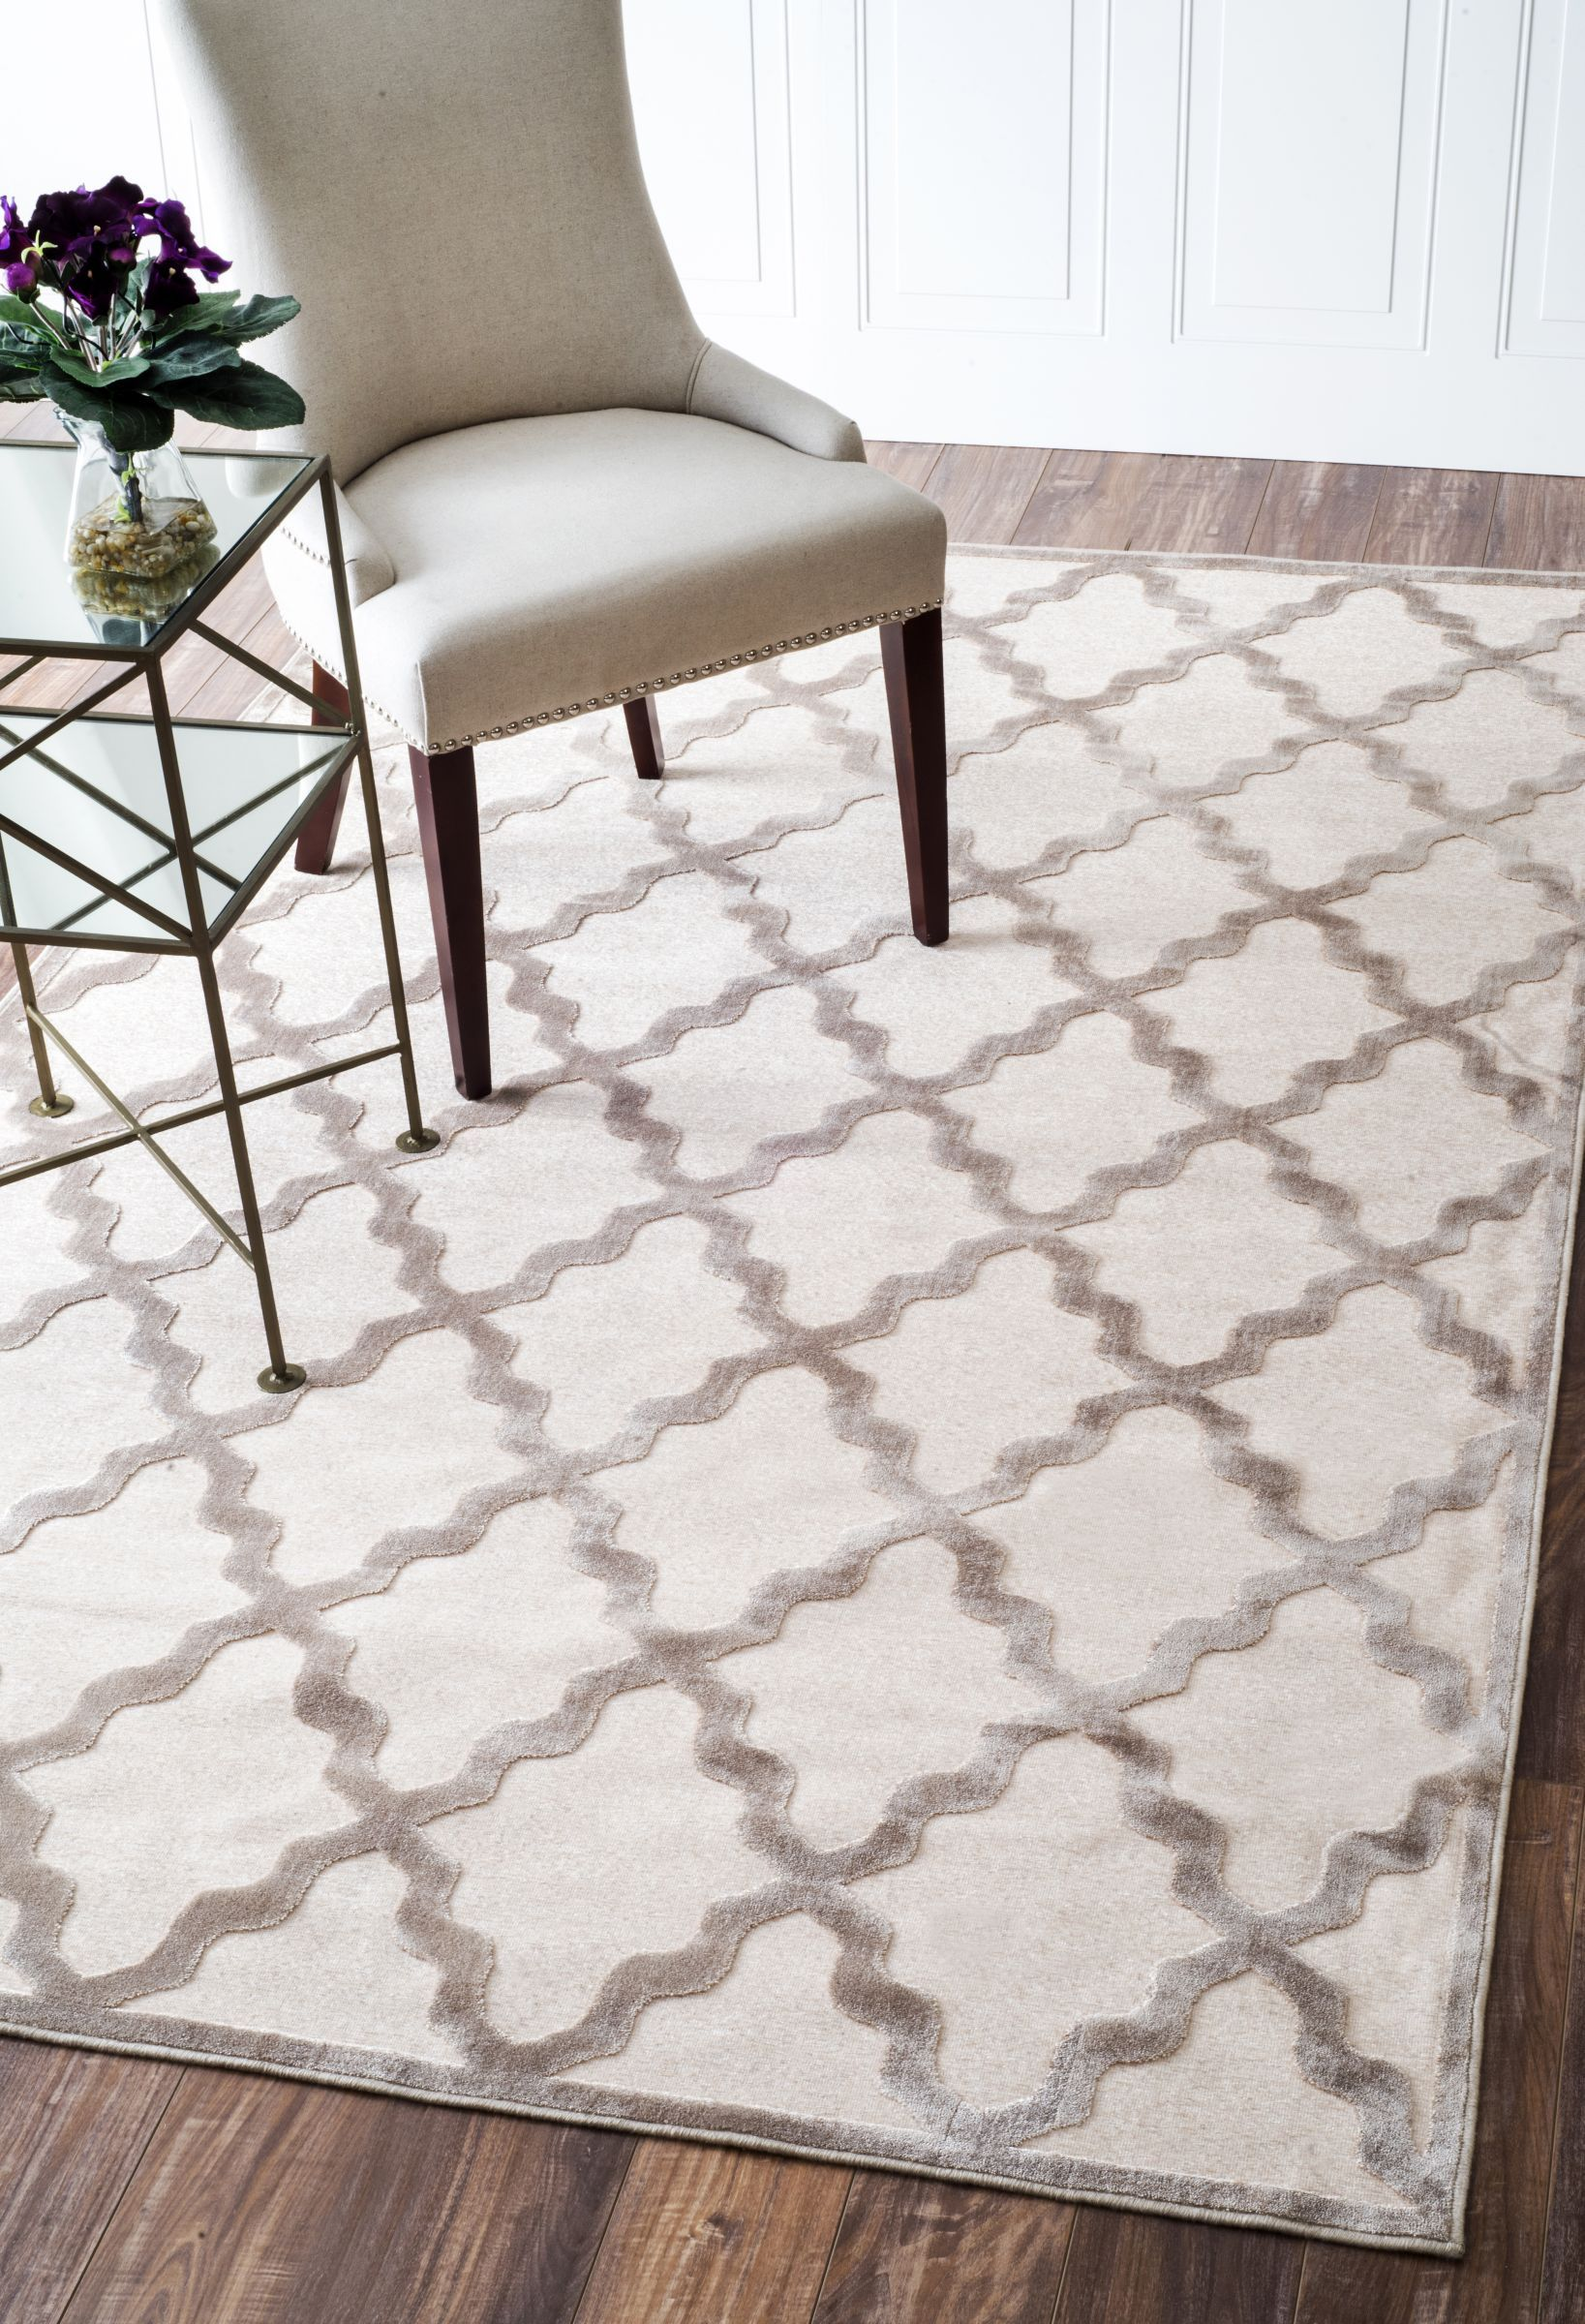 Rugs Usa Area In Many Styles Including Contemporary Braided Outdoor And Flokati Shag